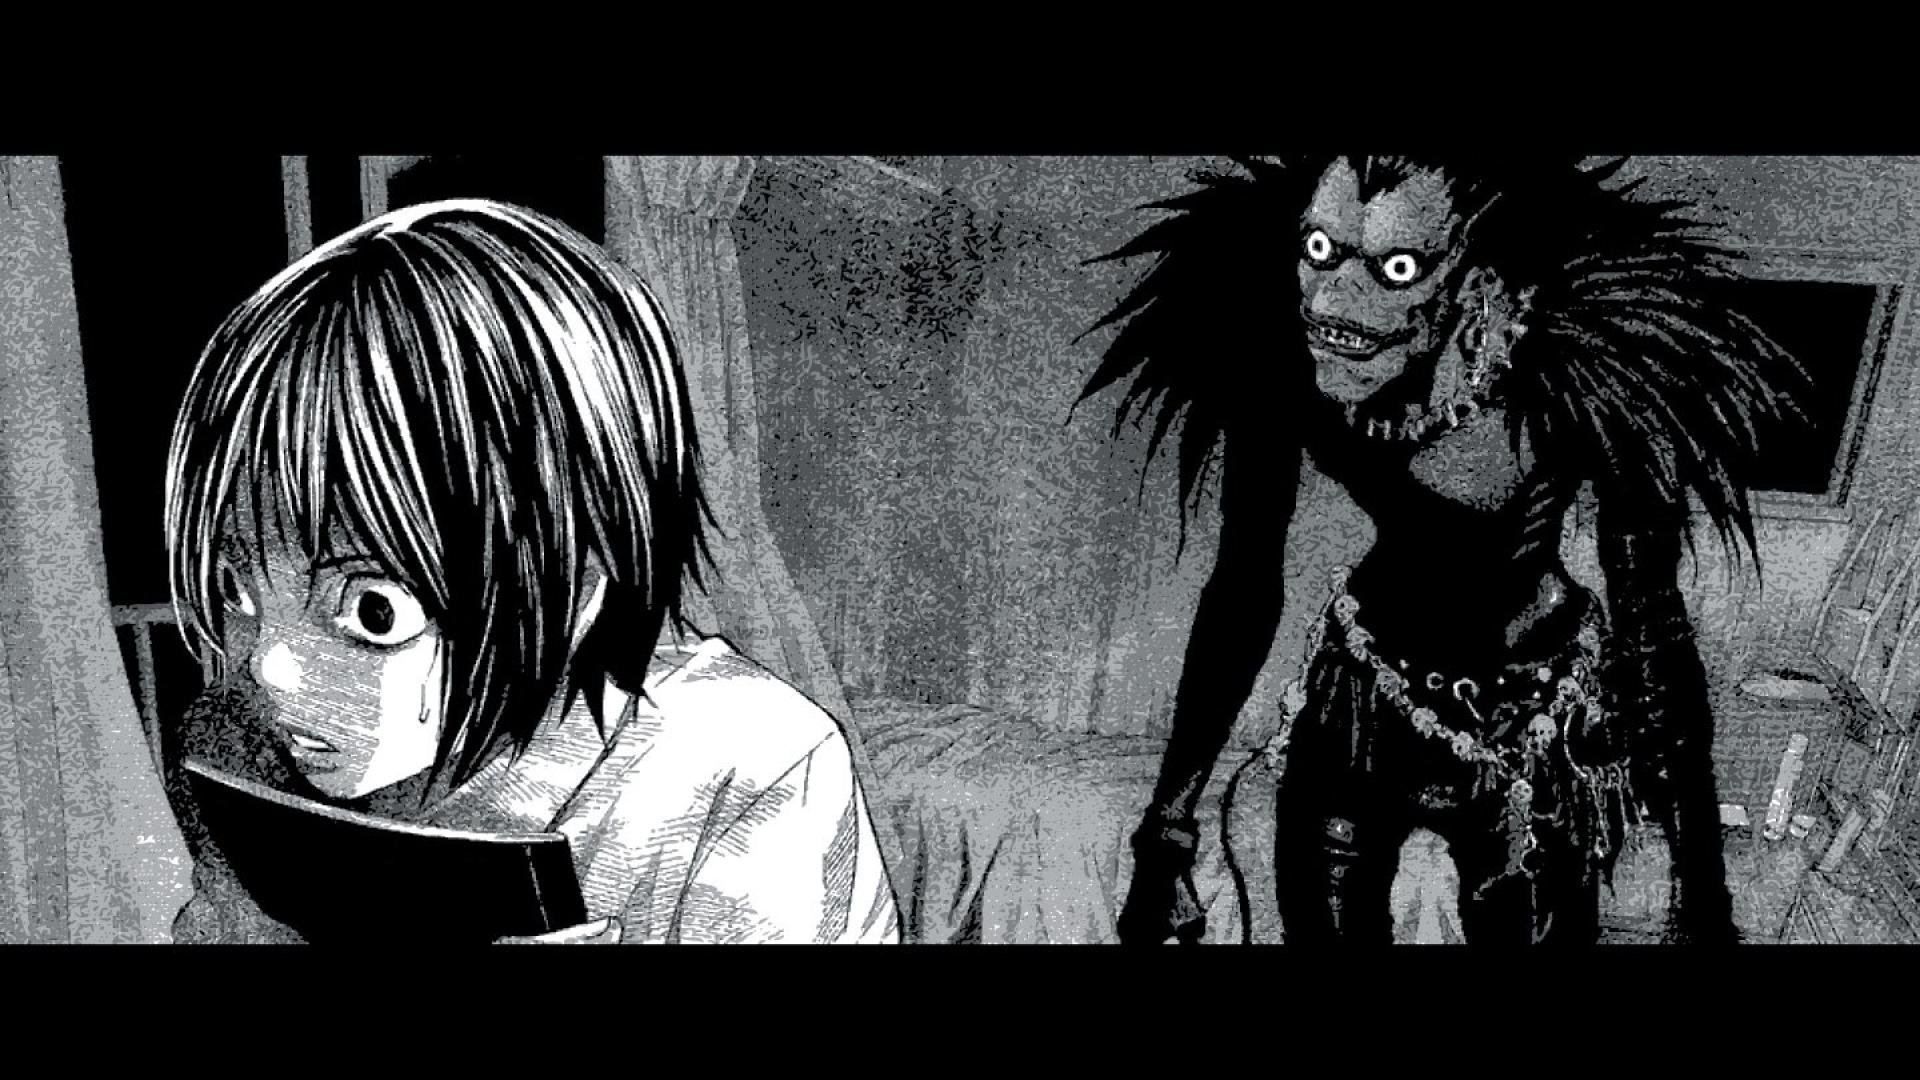 Death Note Ryuk Wallpapers - Top Free Death Note Ryuk Backgrounds